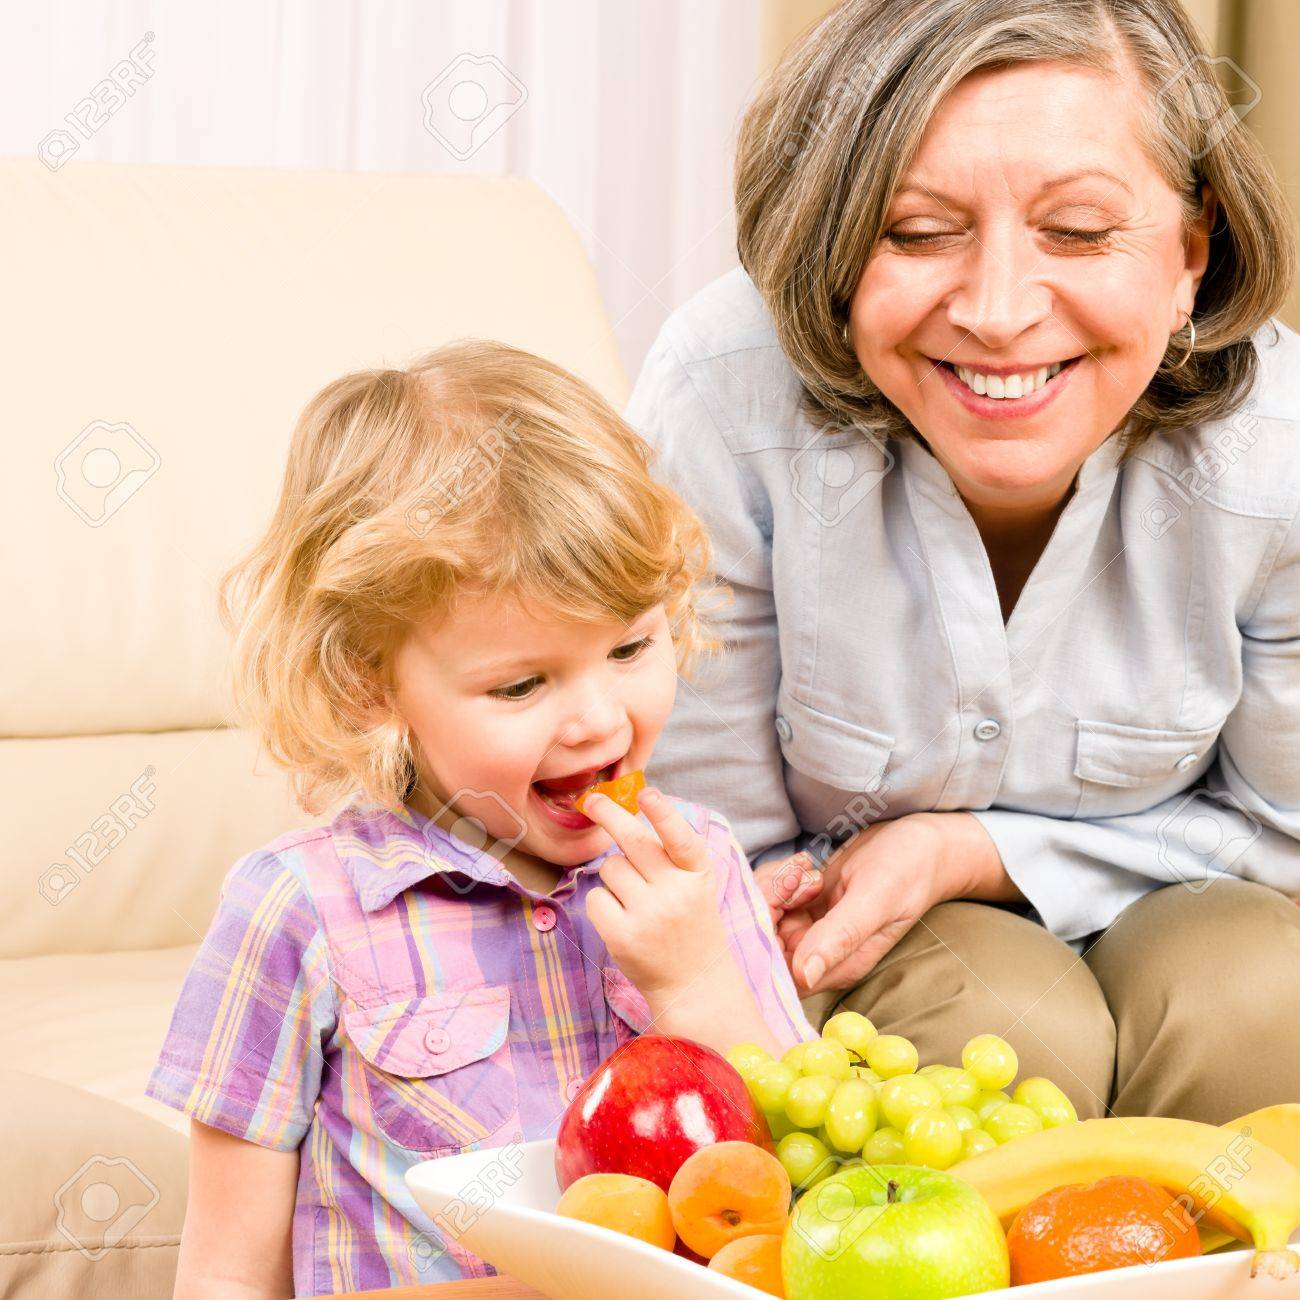 Little girl eat apricot fruit with grandmother relaxing on sofa Standard-Bild - 12343452